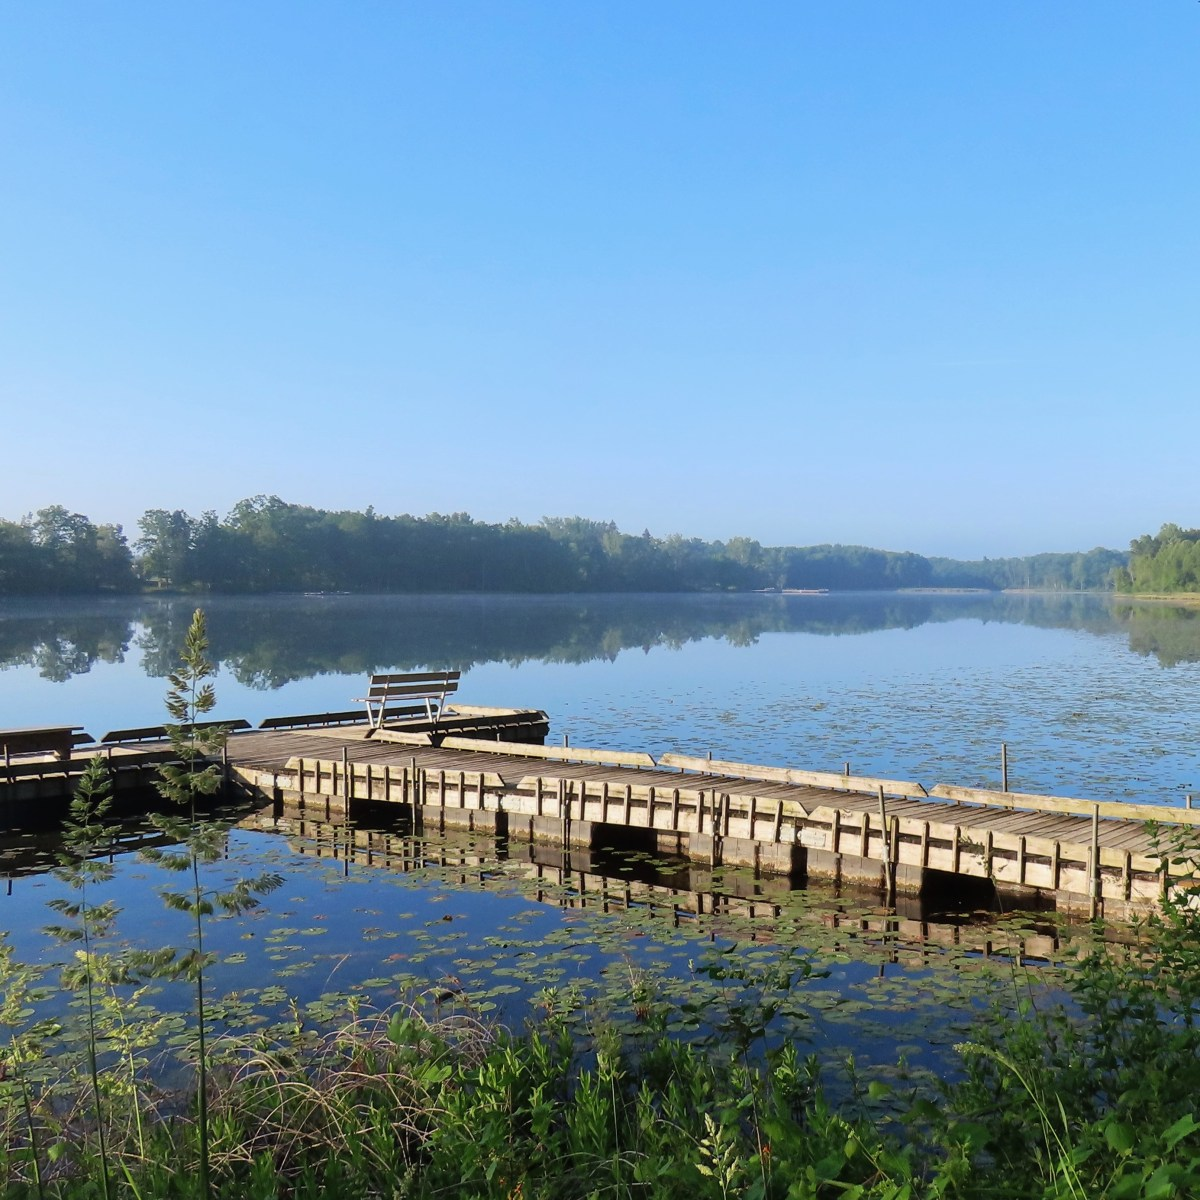 A view of a lake and its wooden T-shaped dock